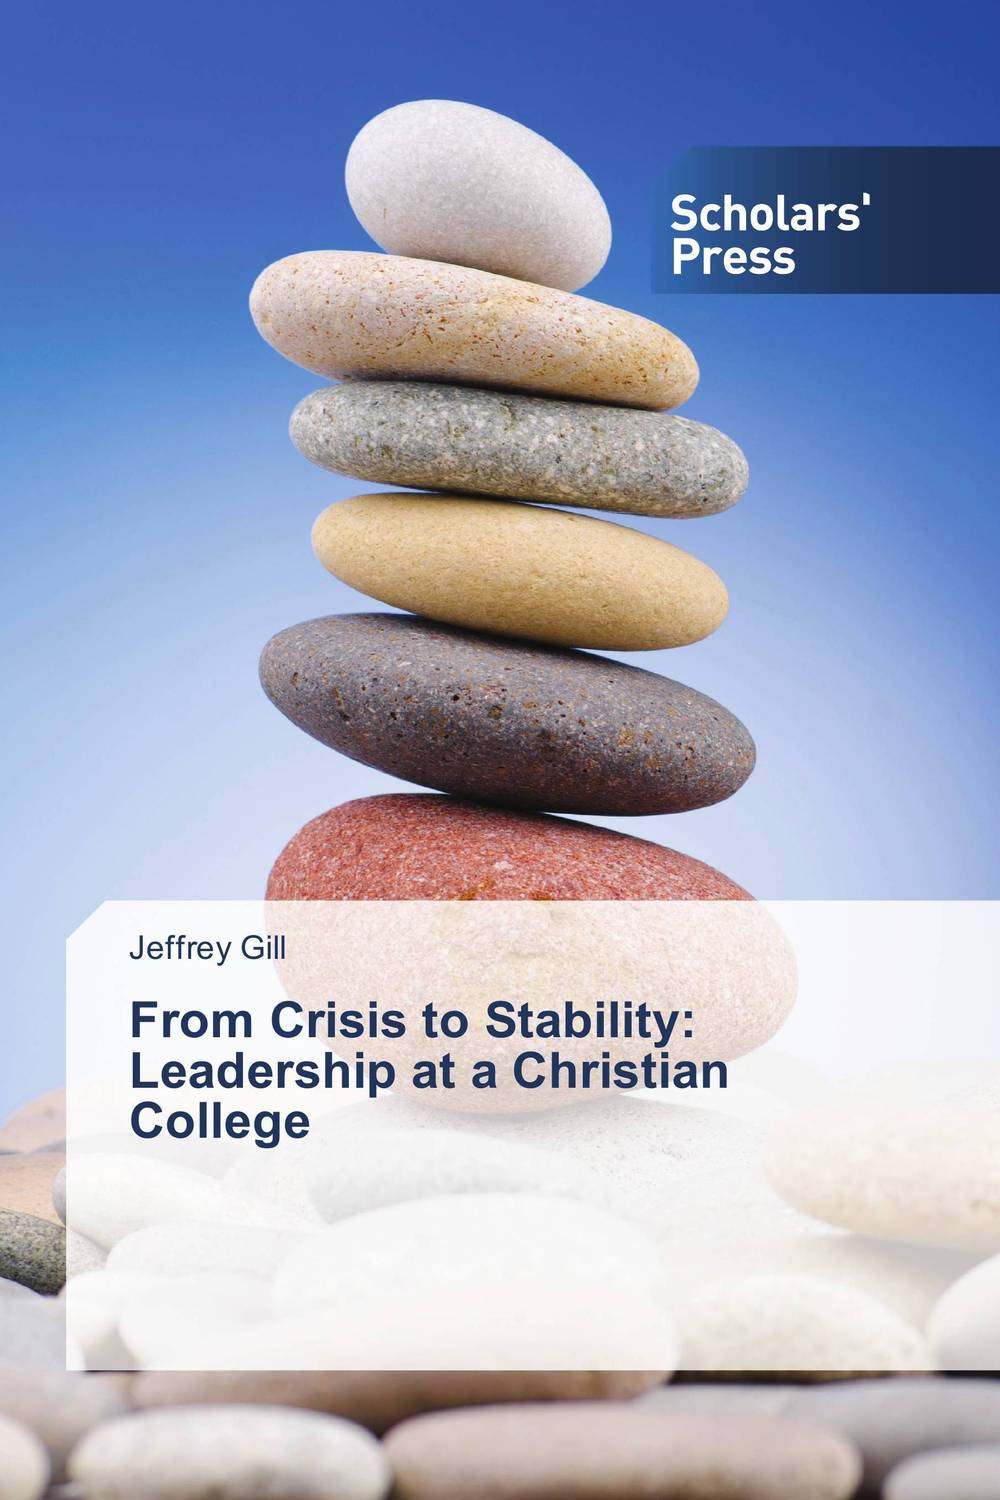 From Crisis to Stability: Leadership at a Christian College